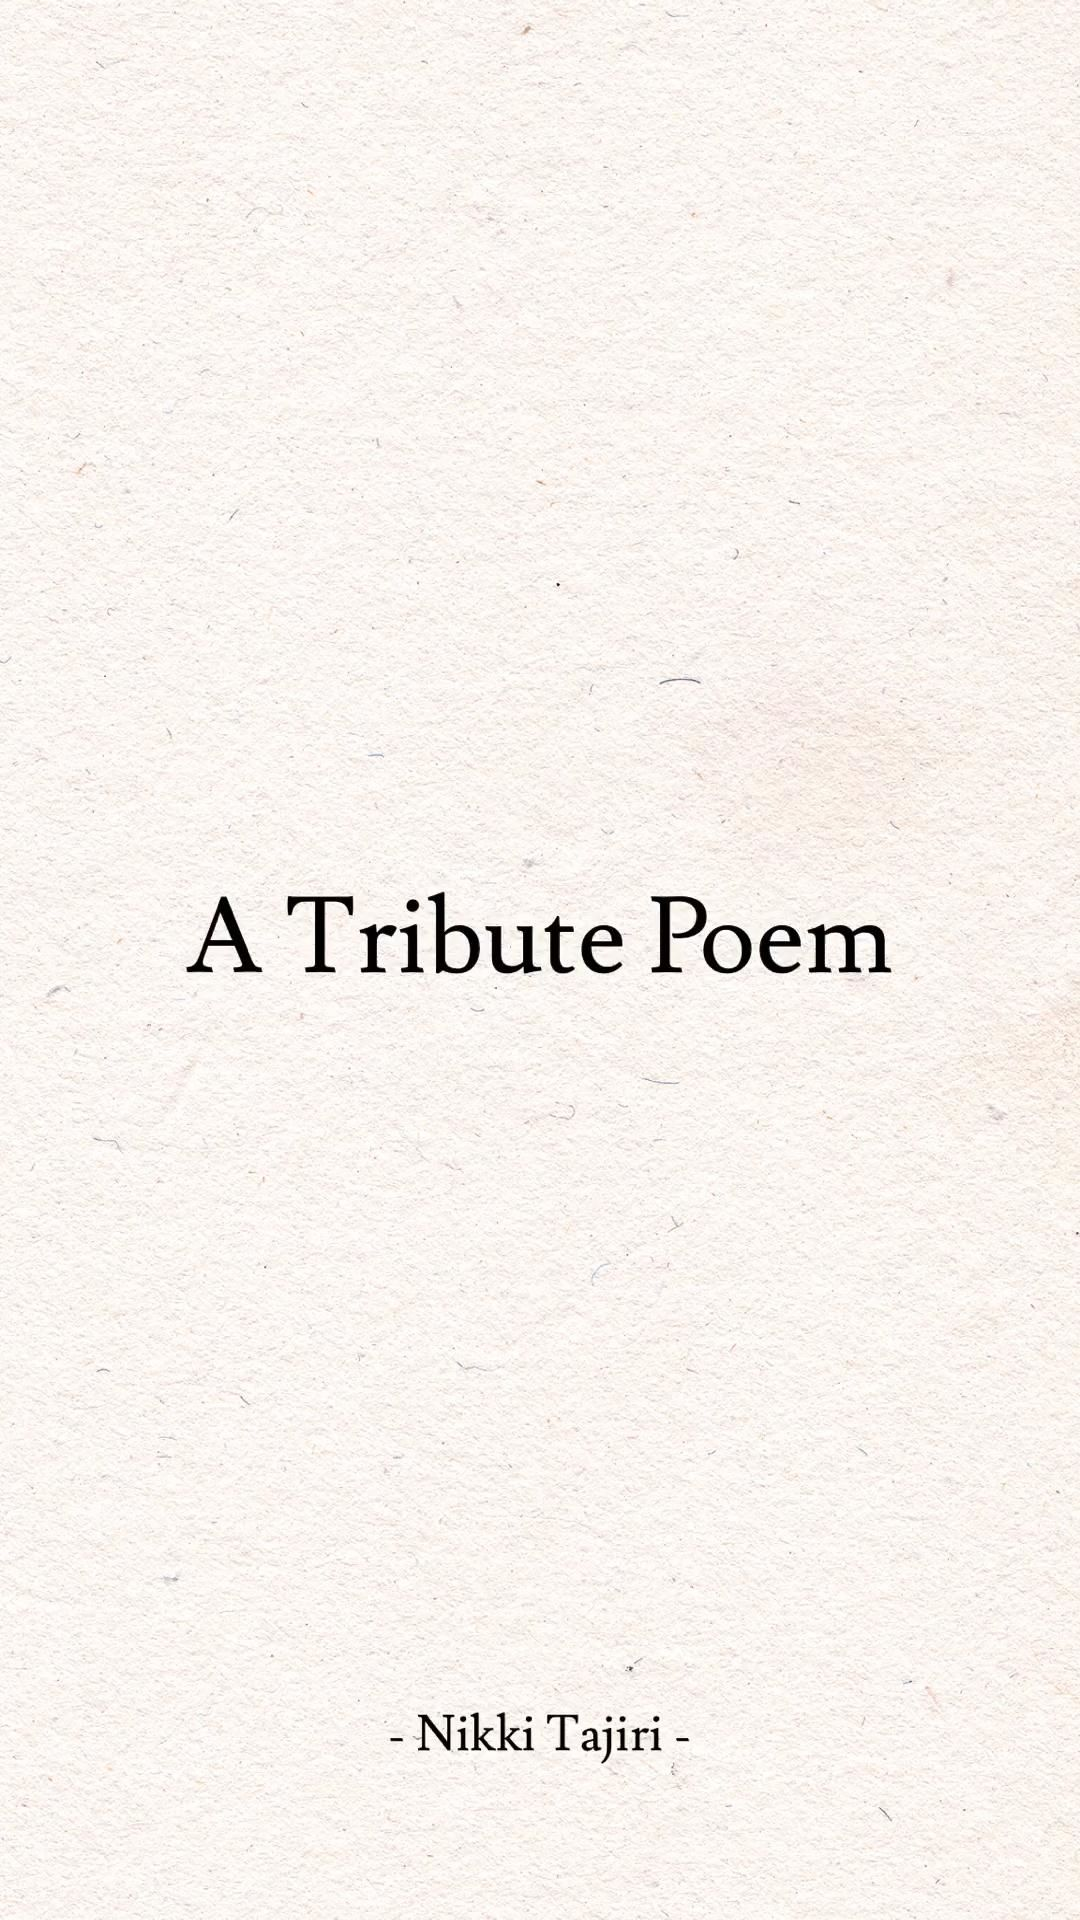 Funeral Poem | Tribute to a Loved One